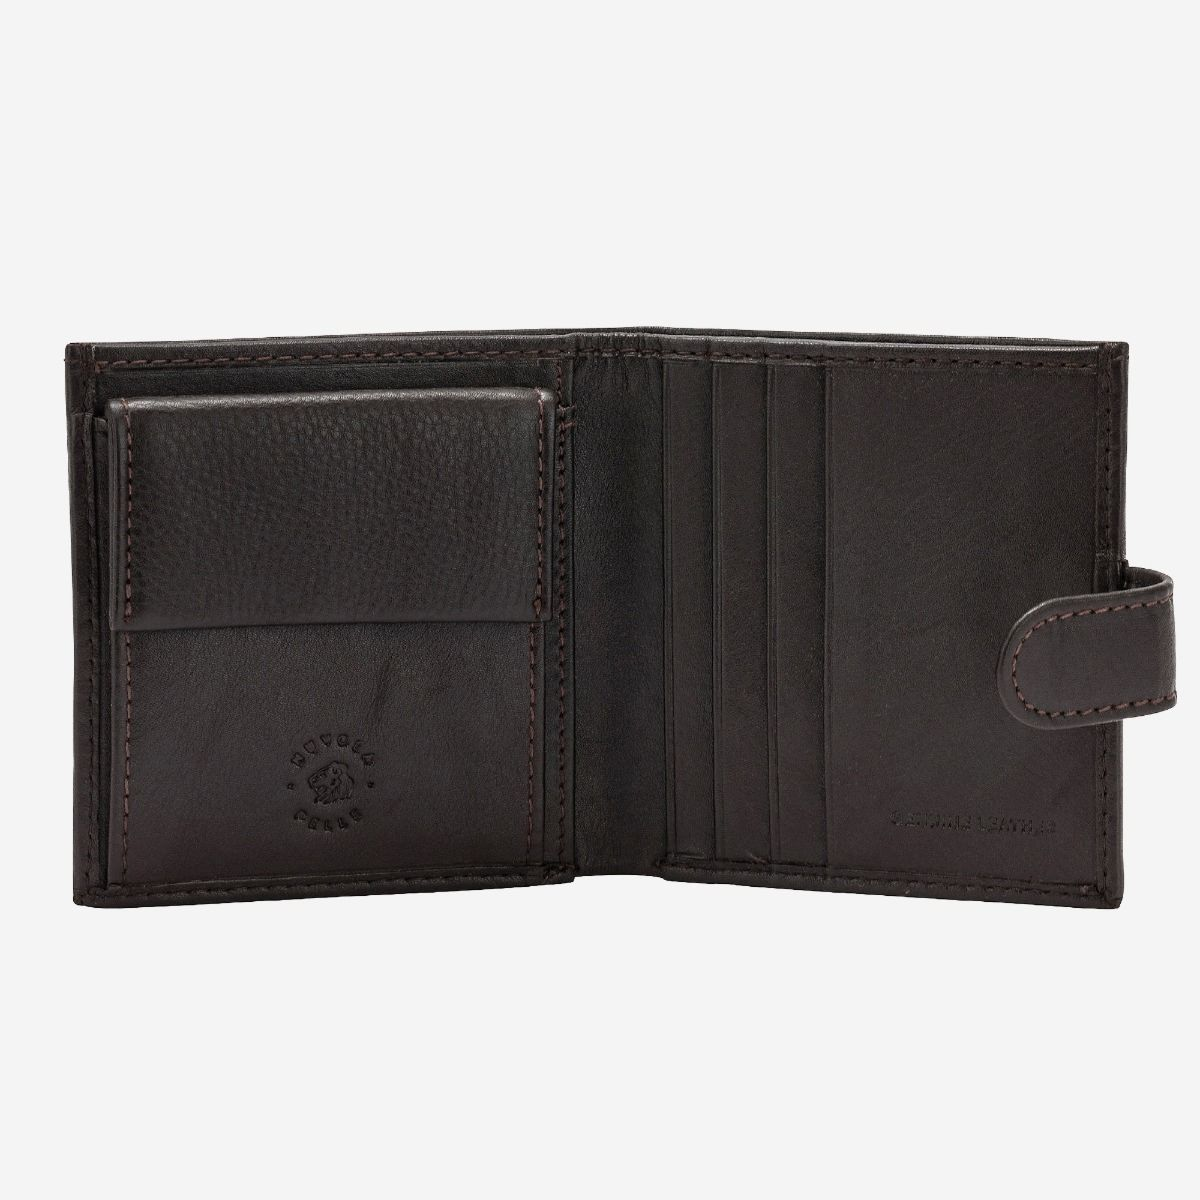 NUVOLA PELLE Mens Leather Wallet With Snap Closure Nappa - Dark Brown